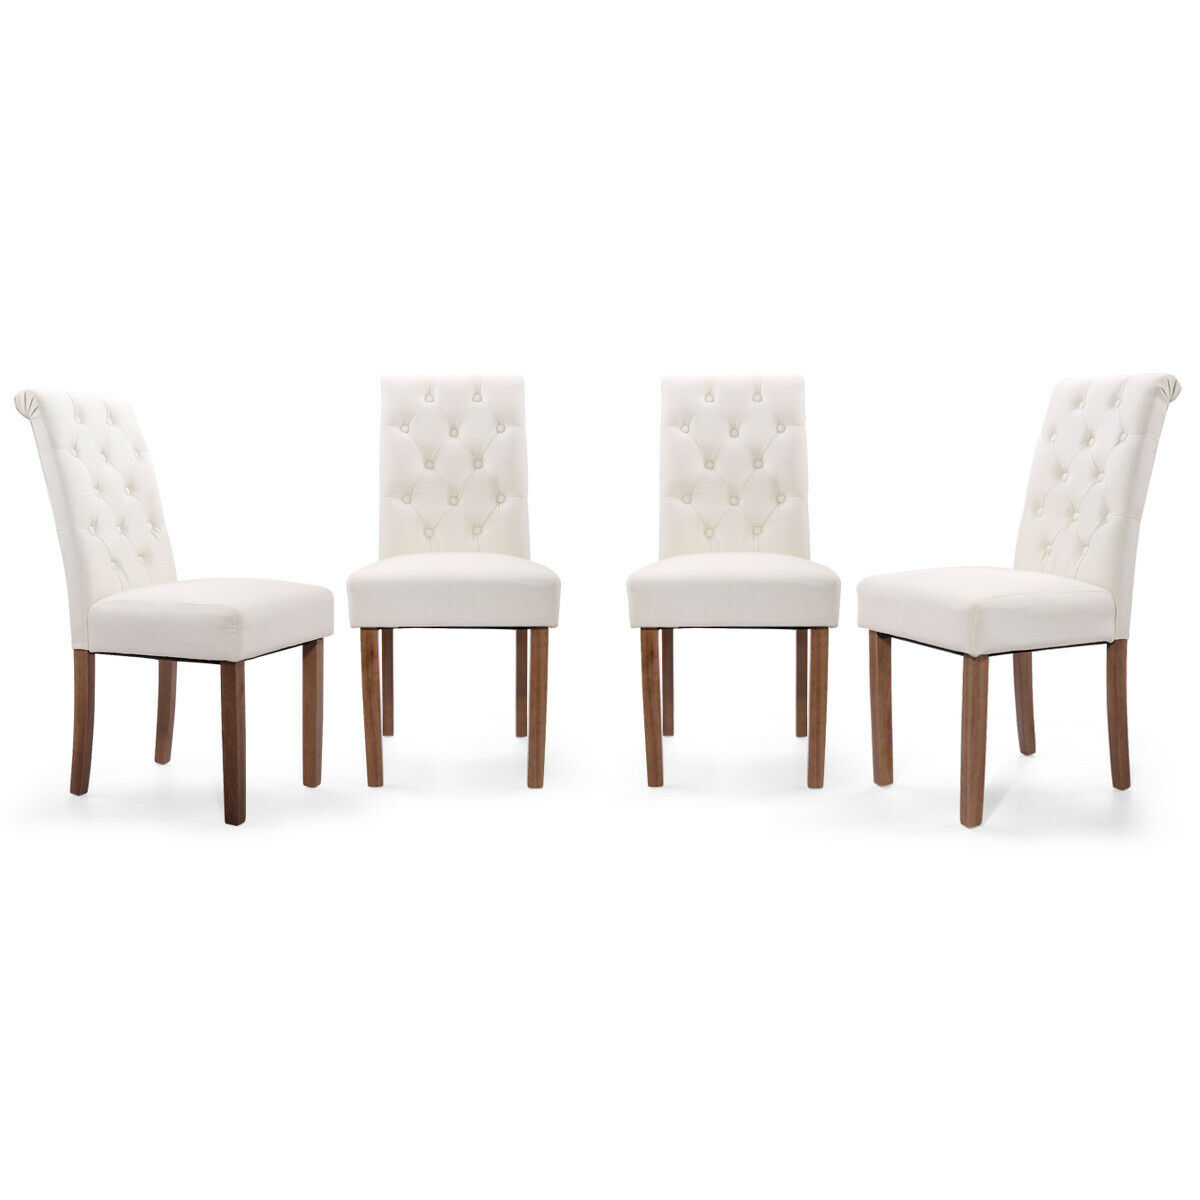 Set of 2 Solid Wood Padded Tufted High Back Parsons Dining Chairs Leisure Beige